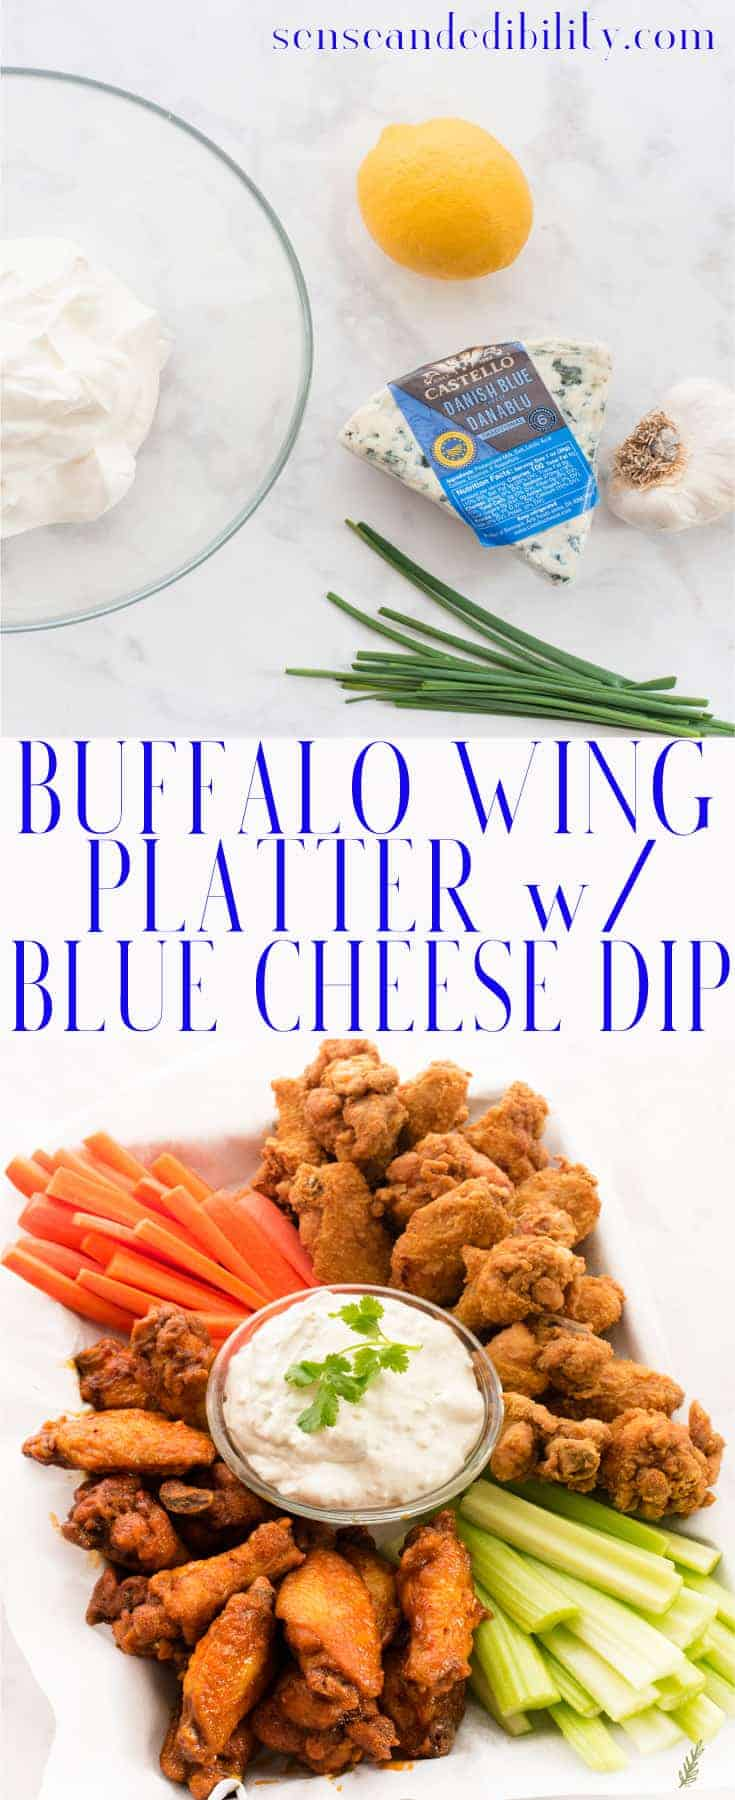 Sense & Edibility's Buffalo Wing Platter with Blue Cheese Dip Pin